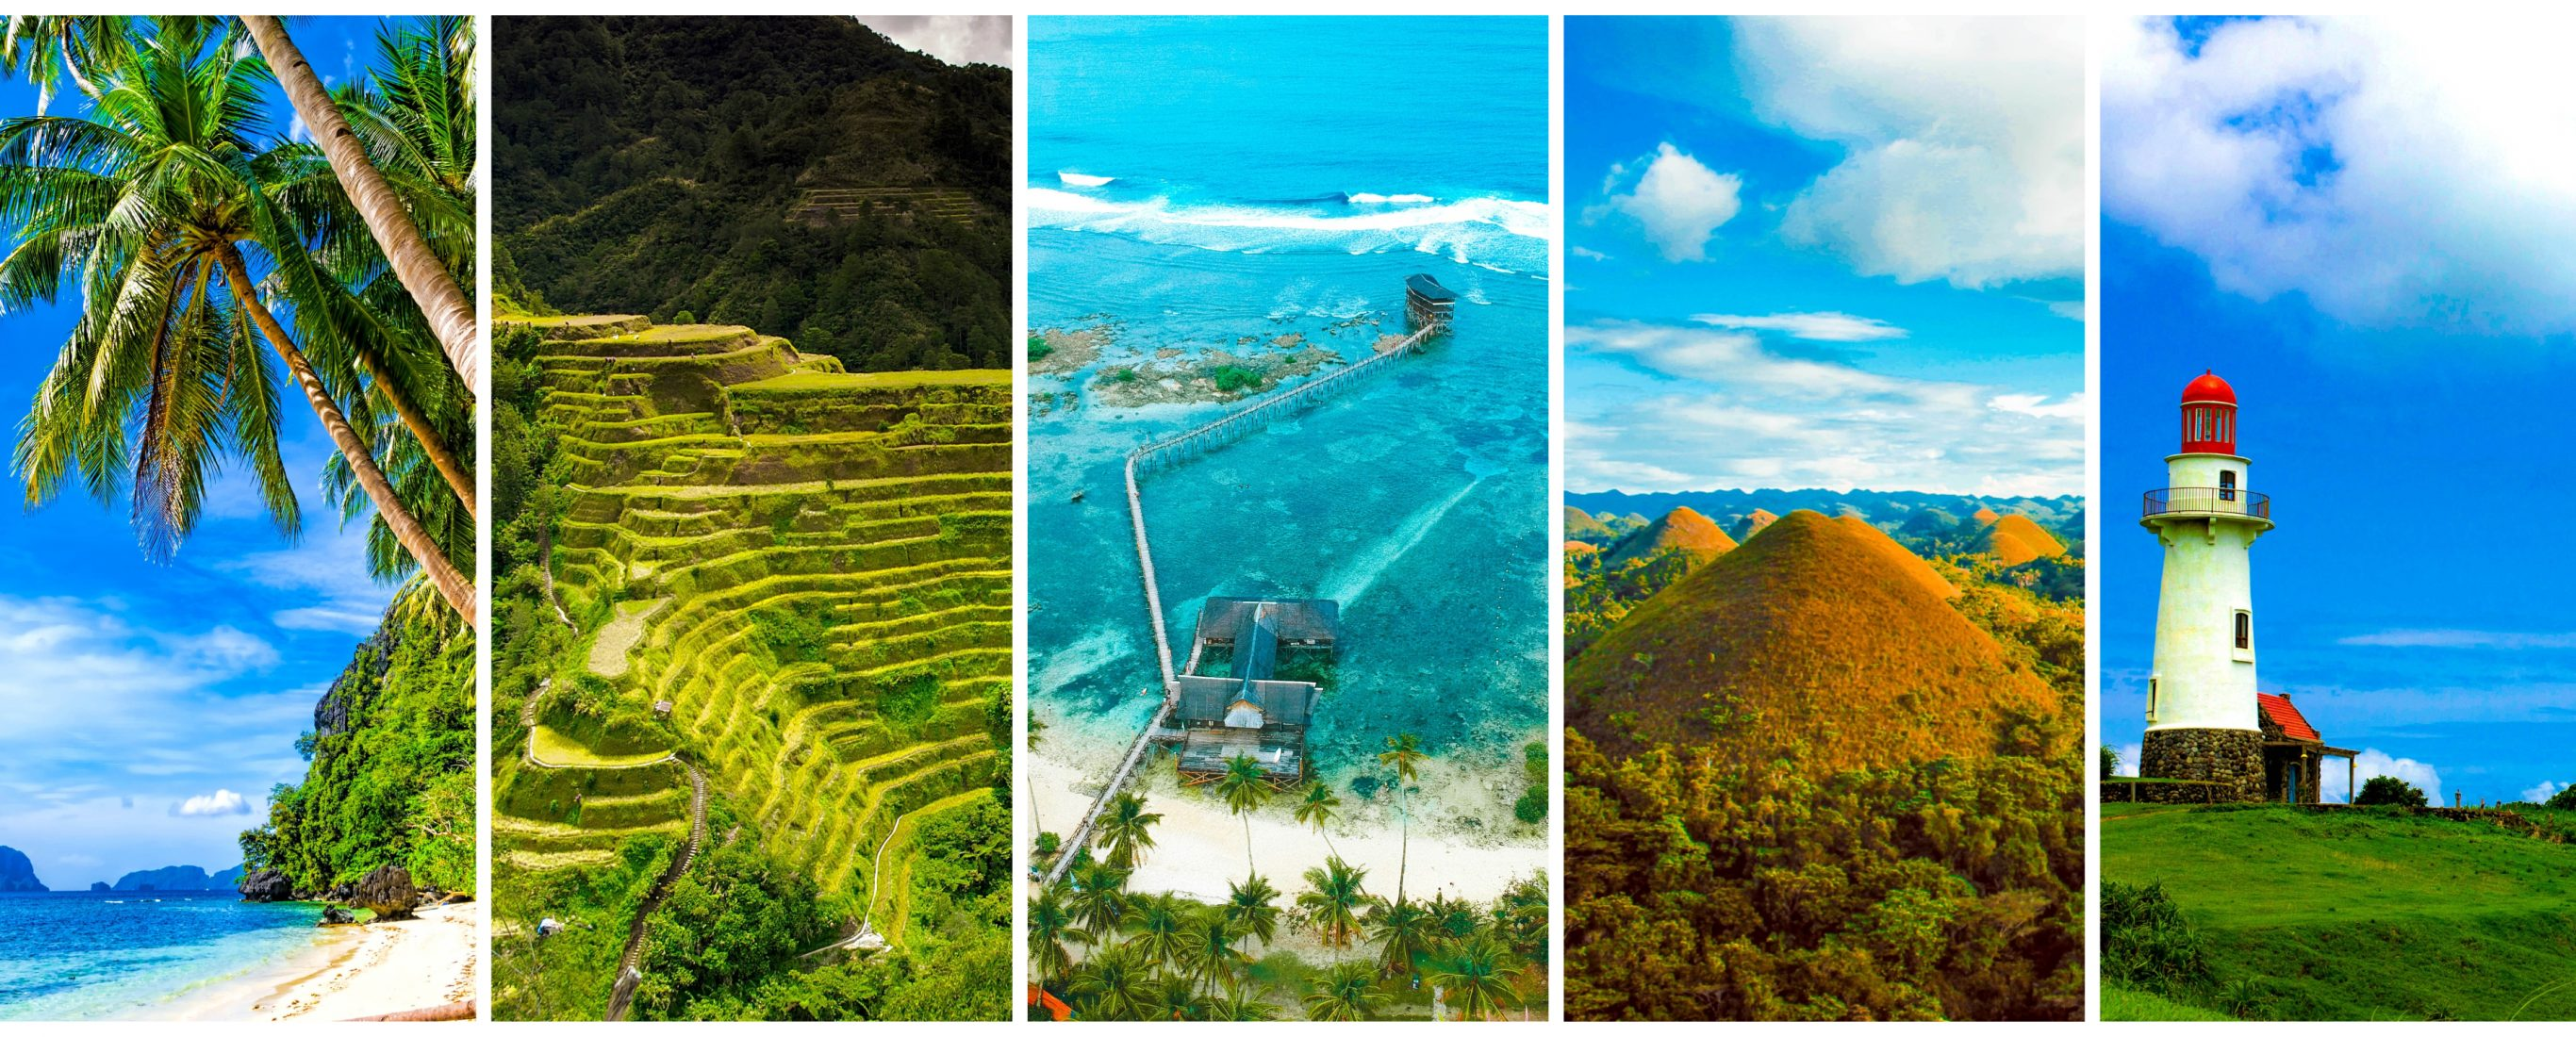 The most amazing places in the Philippines - Part 1 featuring El Nido in Palawan, the Rice Terraces of Ifugao, Siargao Island in Surigao del Norte, the Chocolate Hills of Bohol, and Batanes Islands.